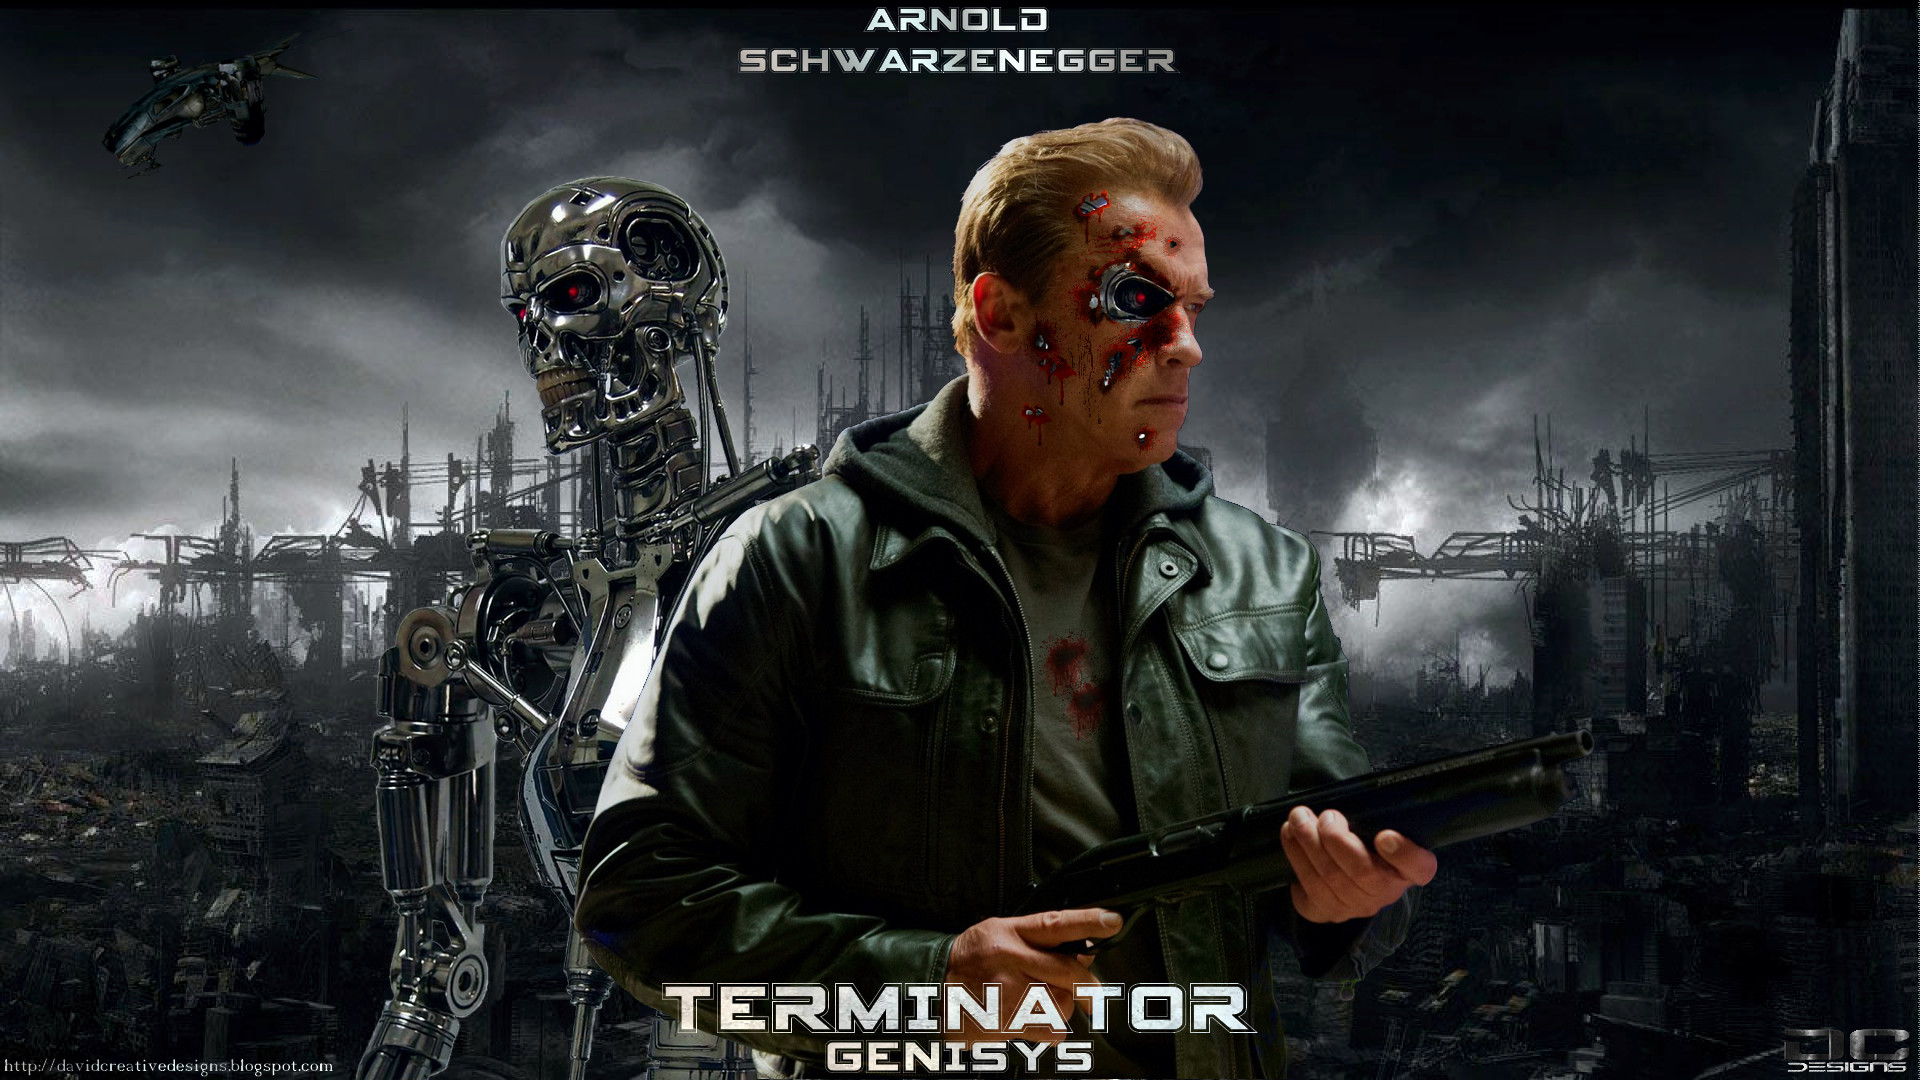 Res: 1920x1080, terminator wallpapers high resolution Terminator Wallpapers High Resolution